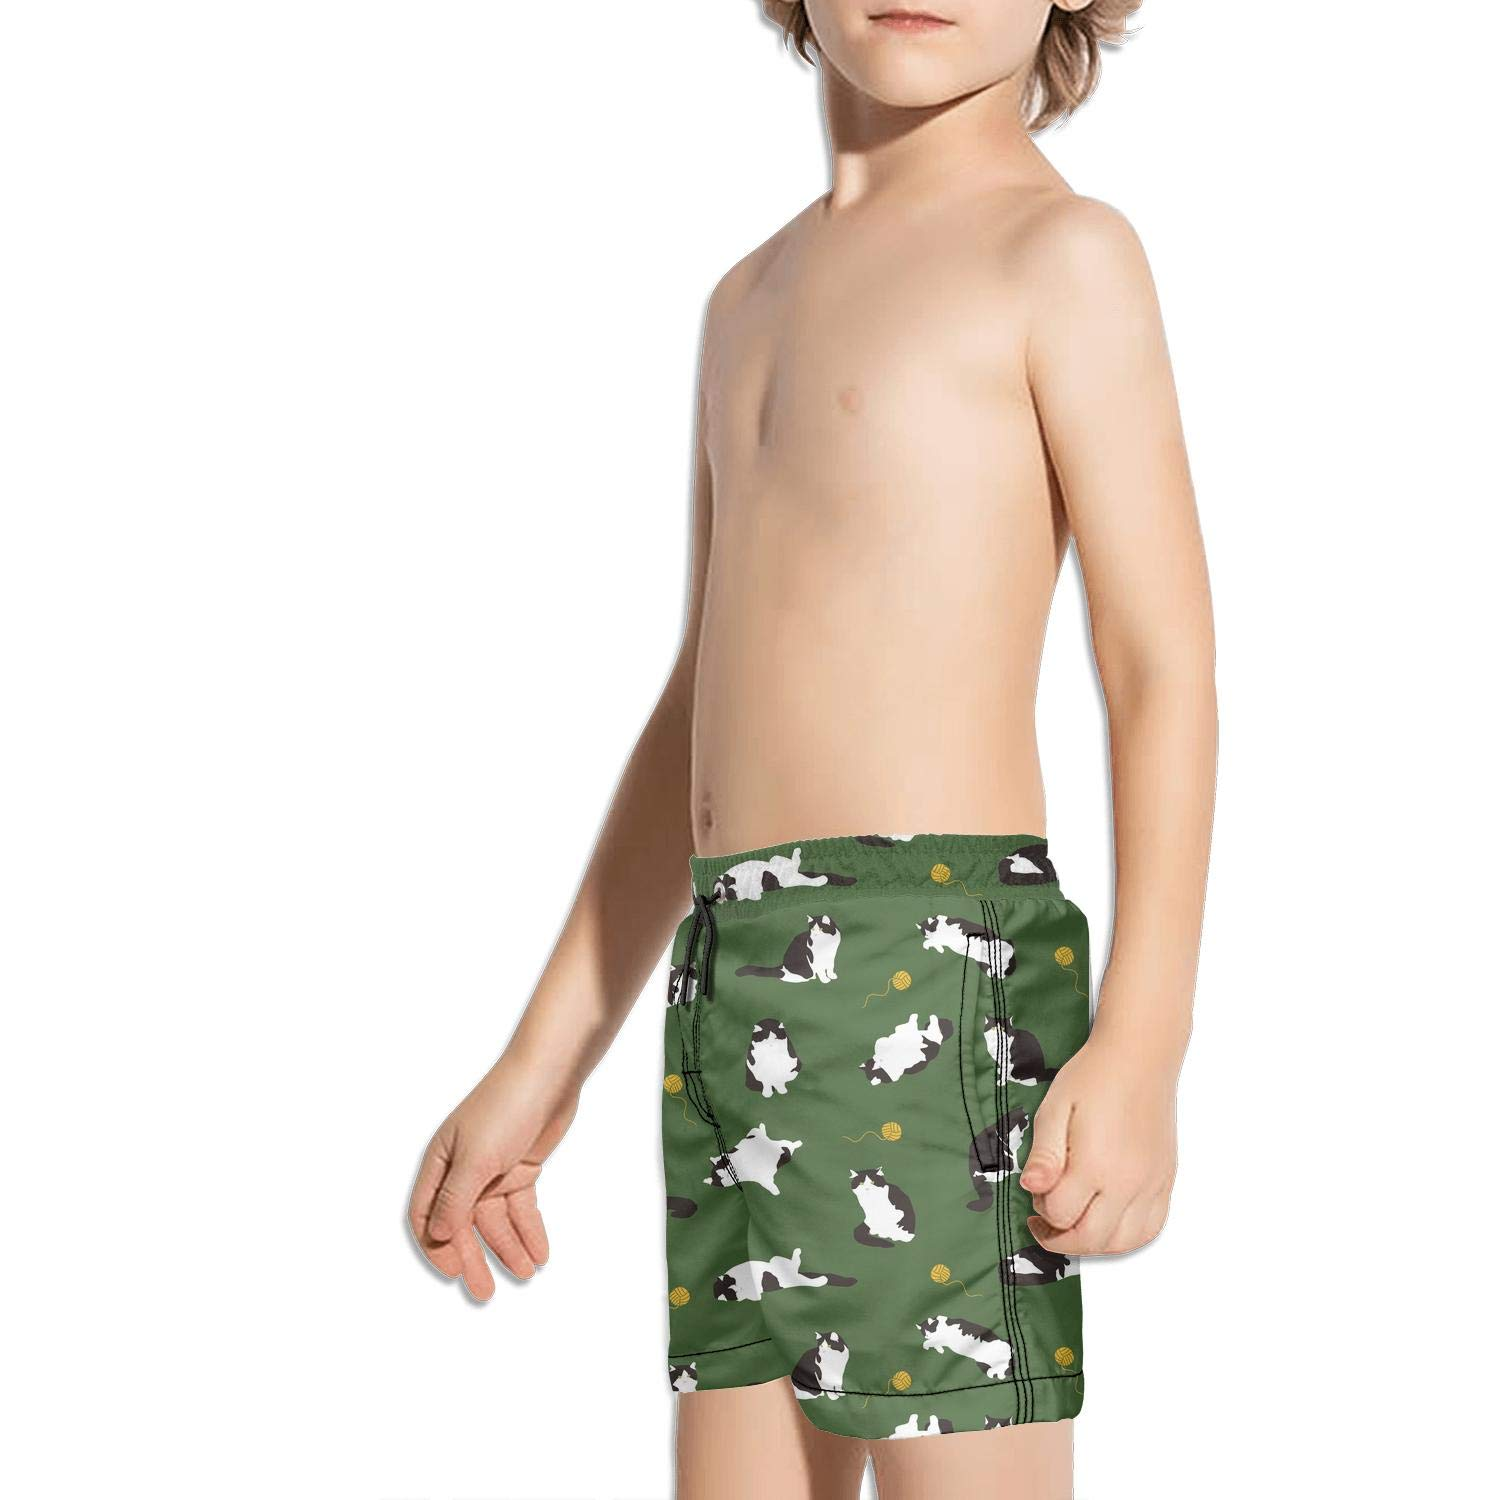 Etstk Black cat Kids Lightweight Trunks for Students